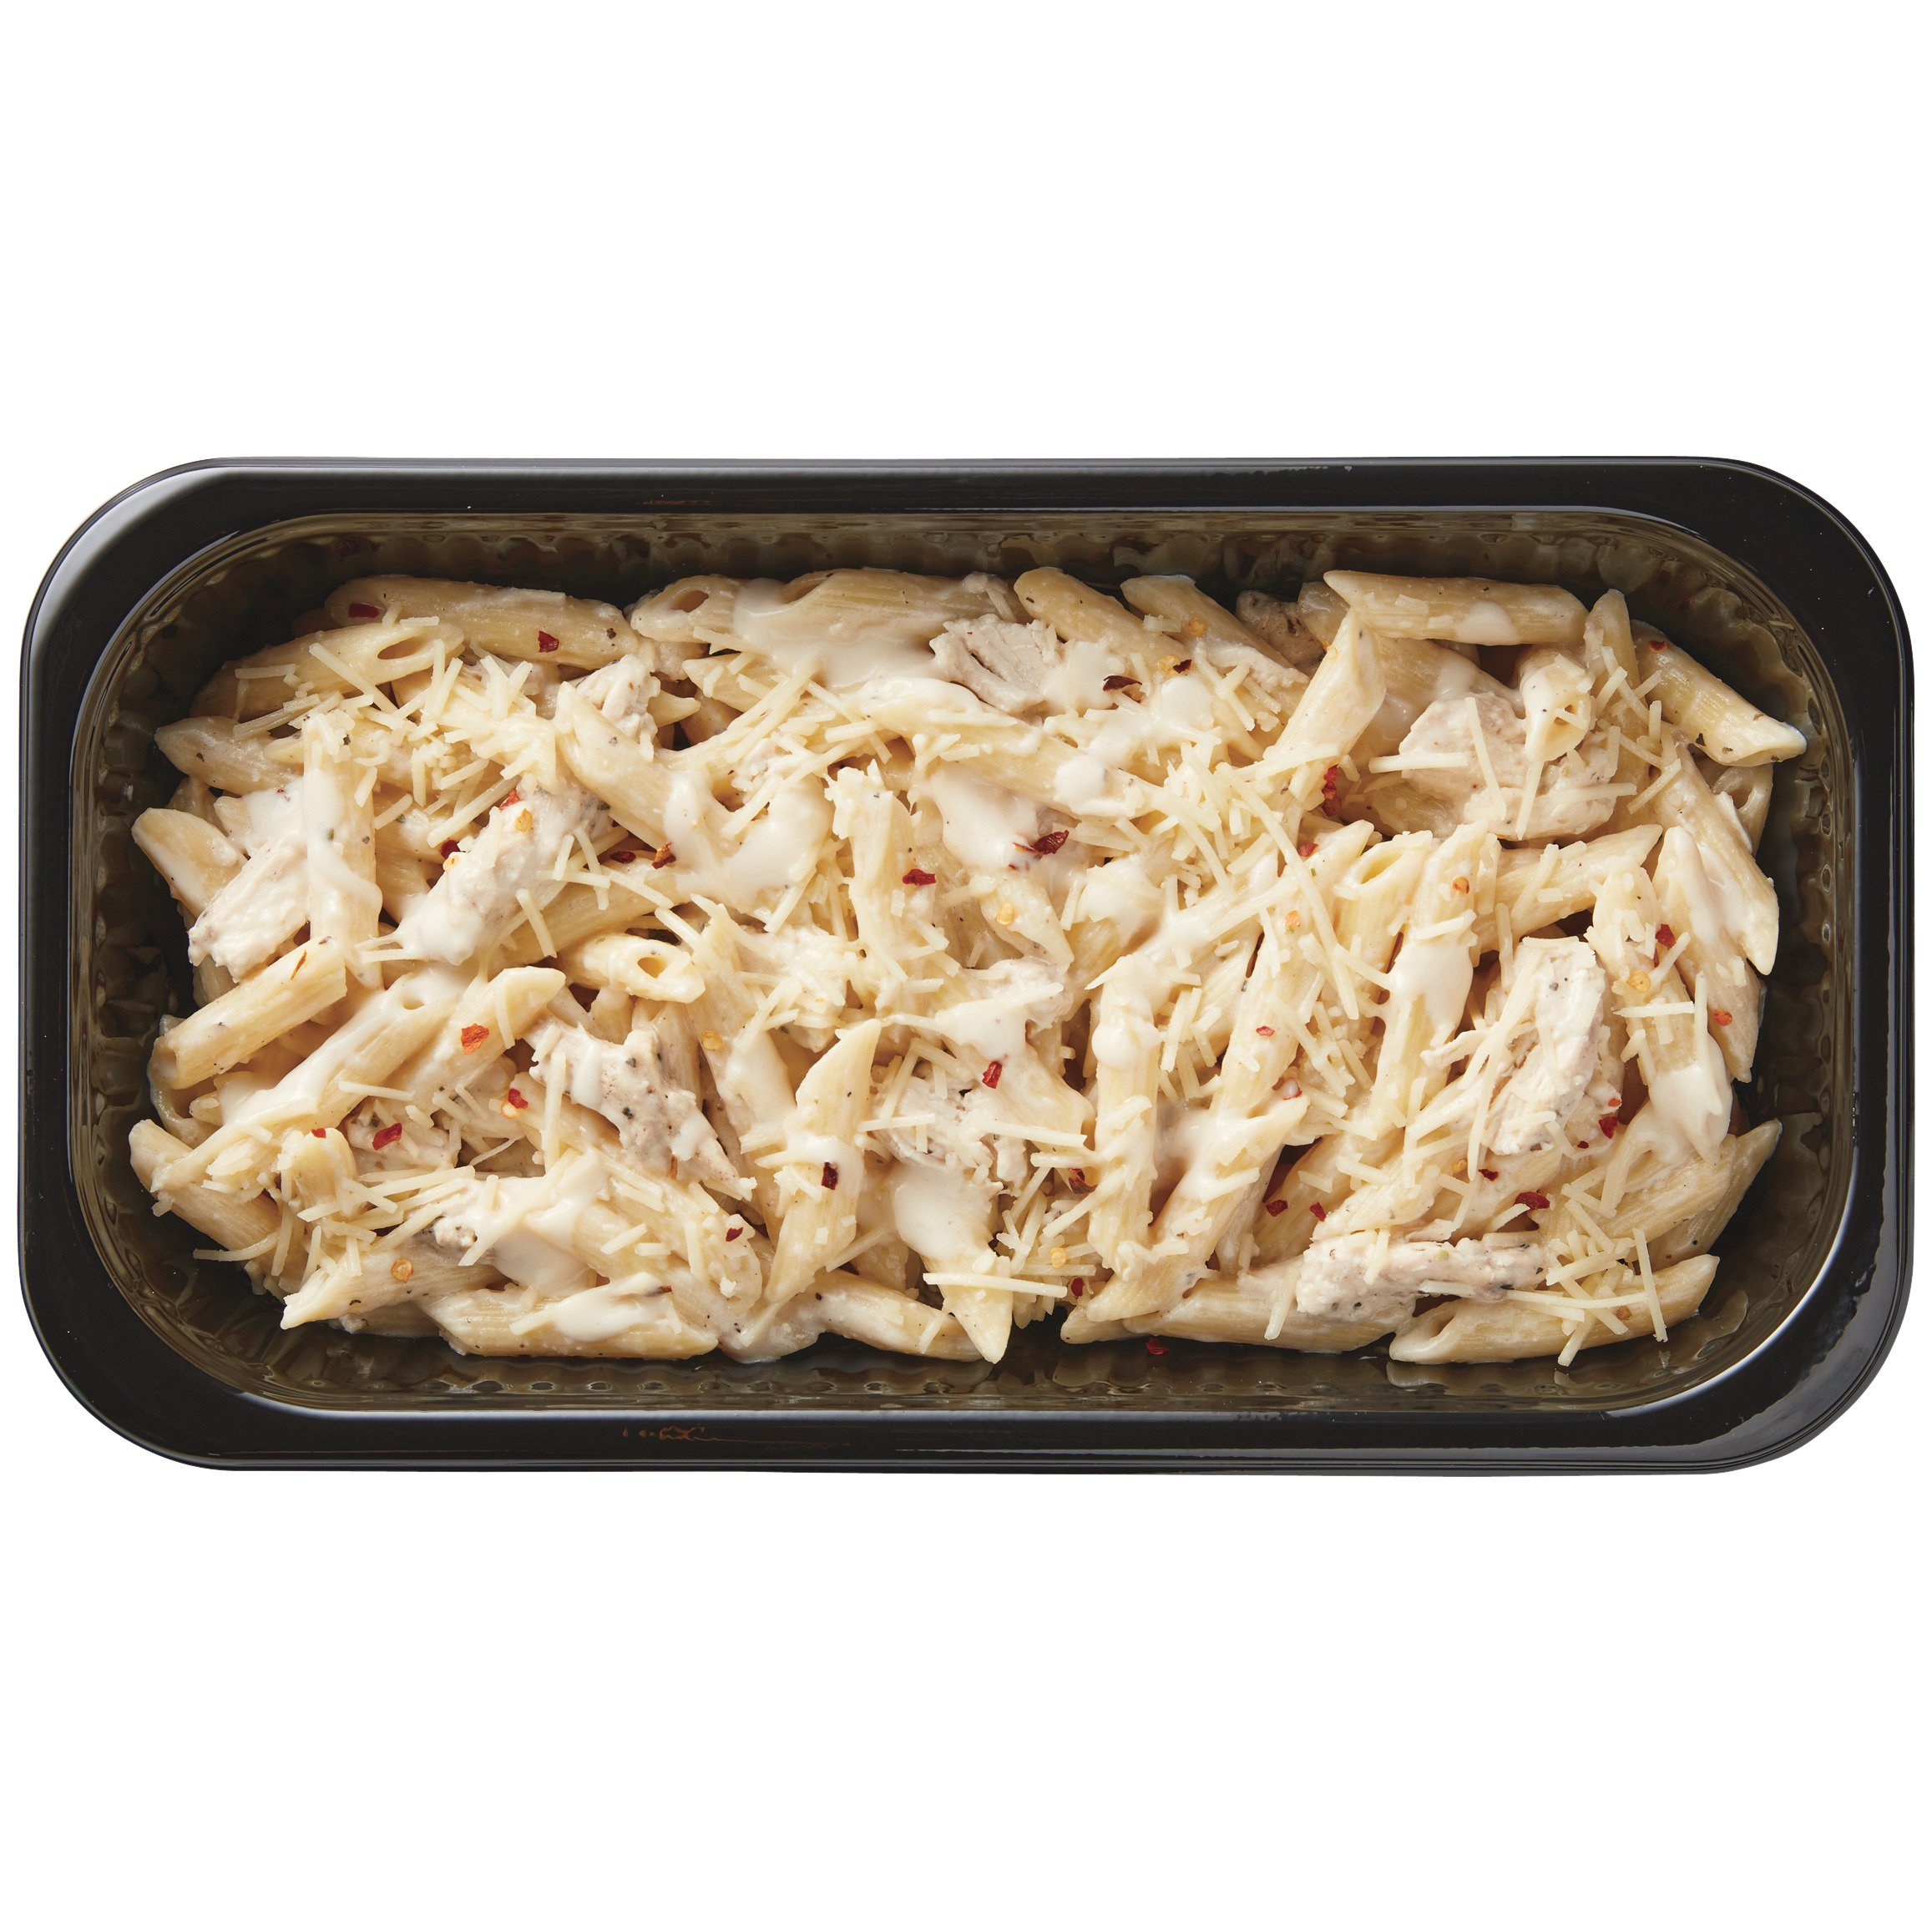 H E B Meal Simple Chicken Alfredo Penne Family Size Shop Entrees Sides At H E B